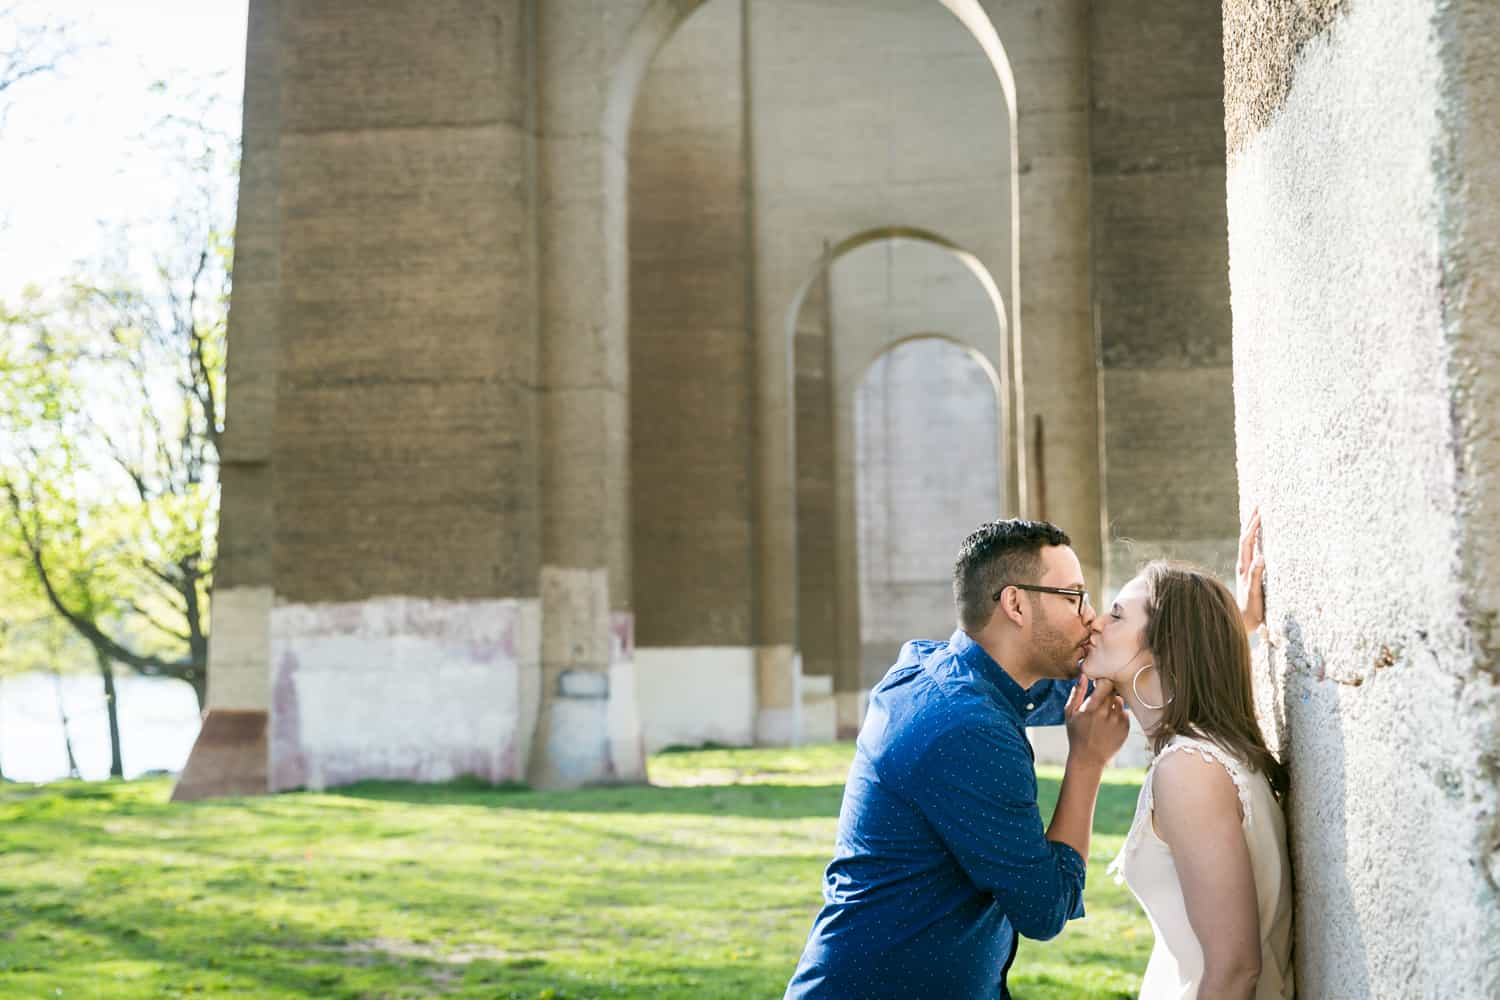 Couple kissing in front of stone arches during an Astoria Park engagement shoot